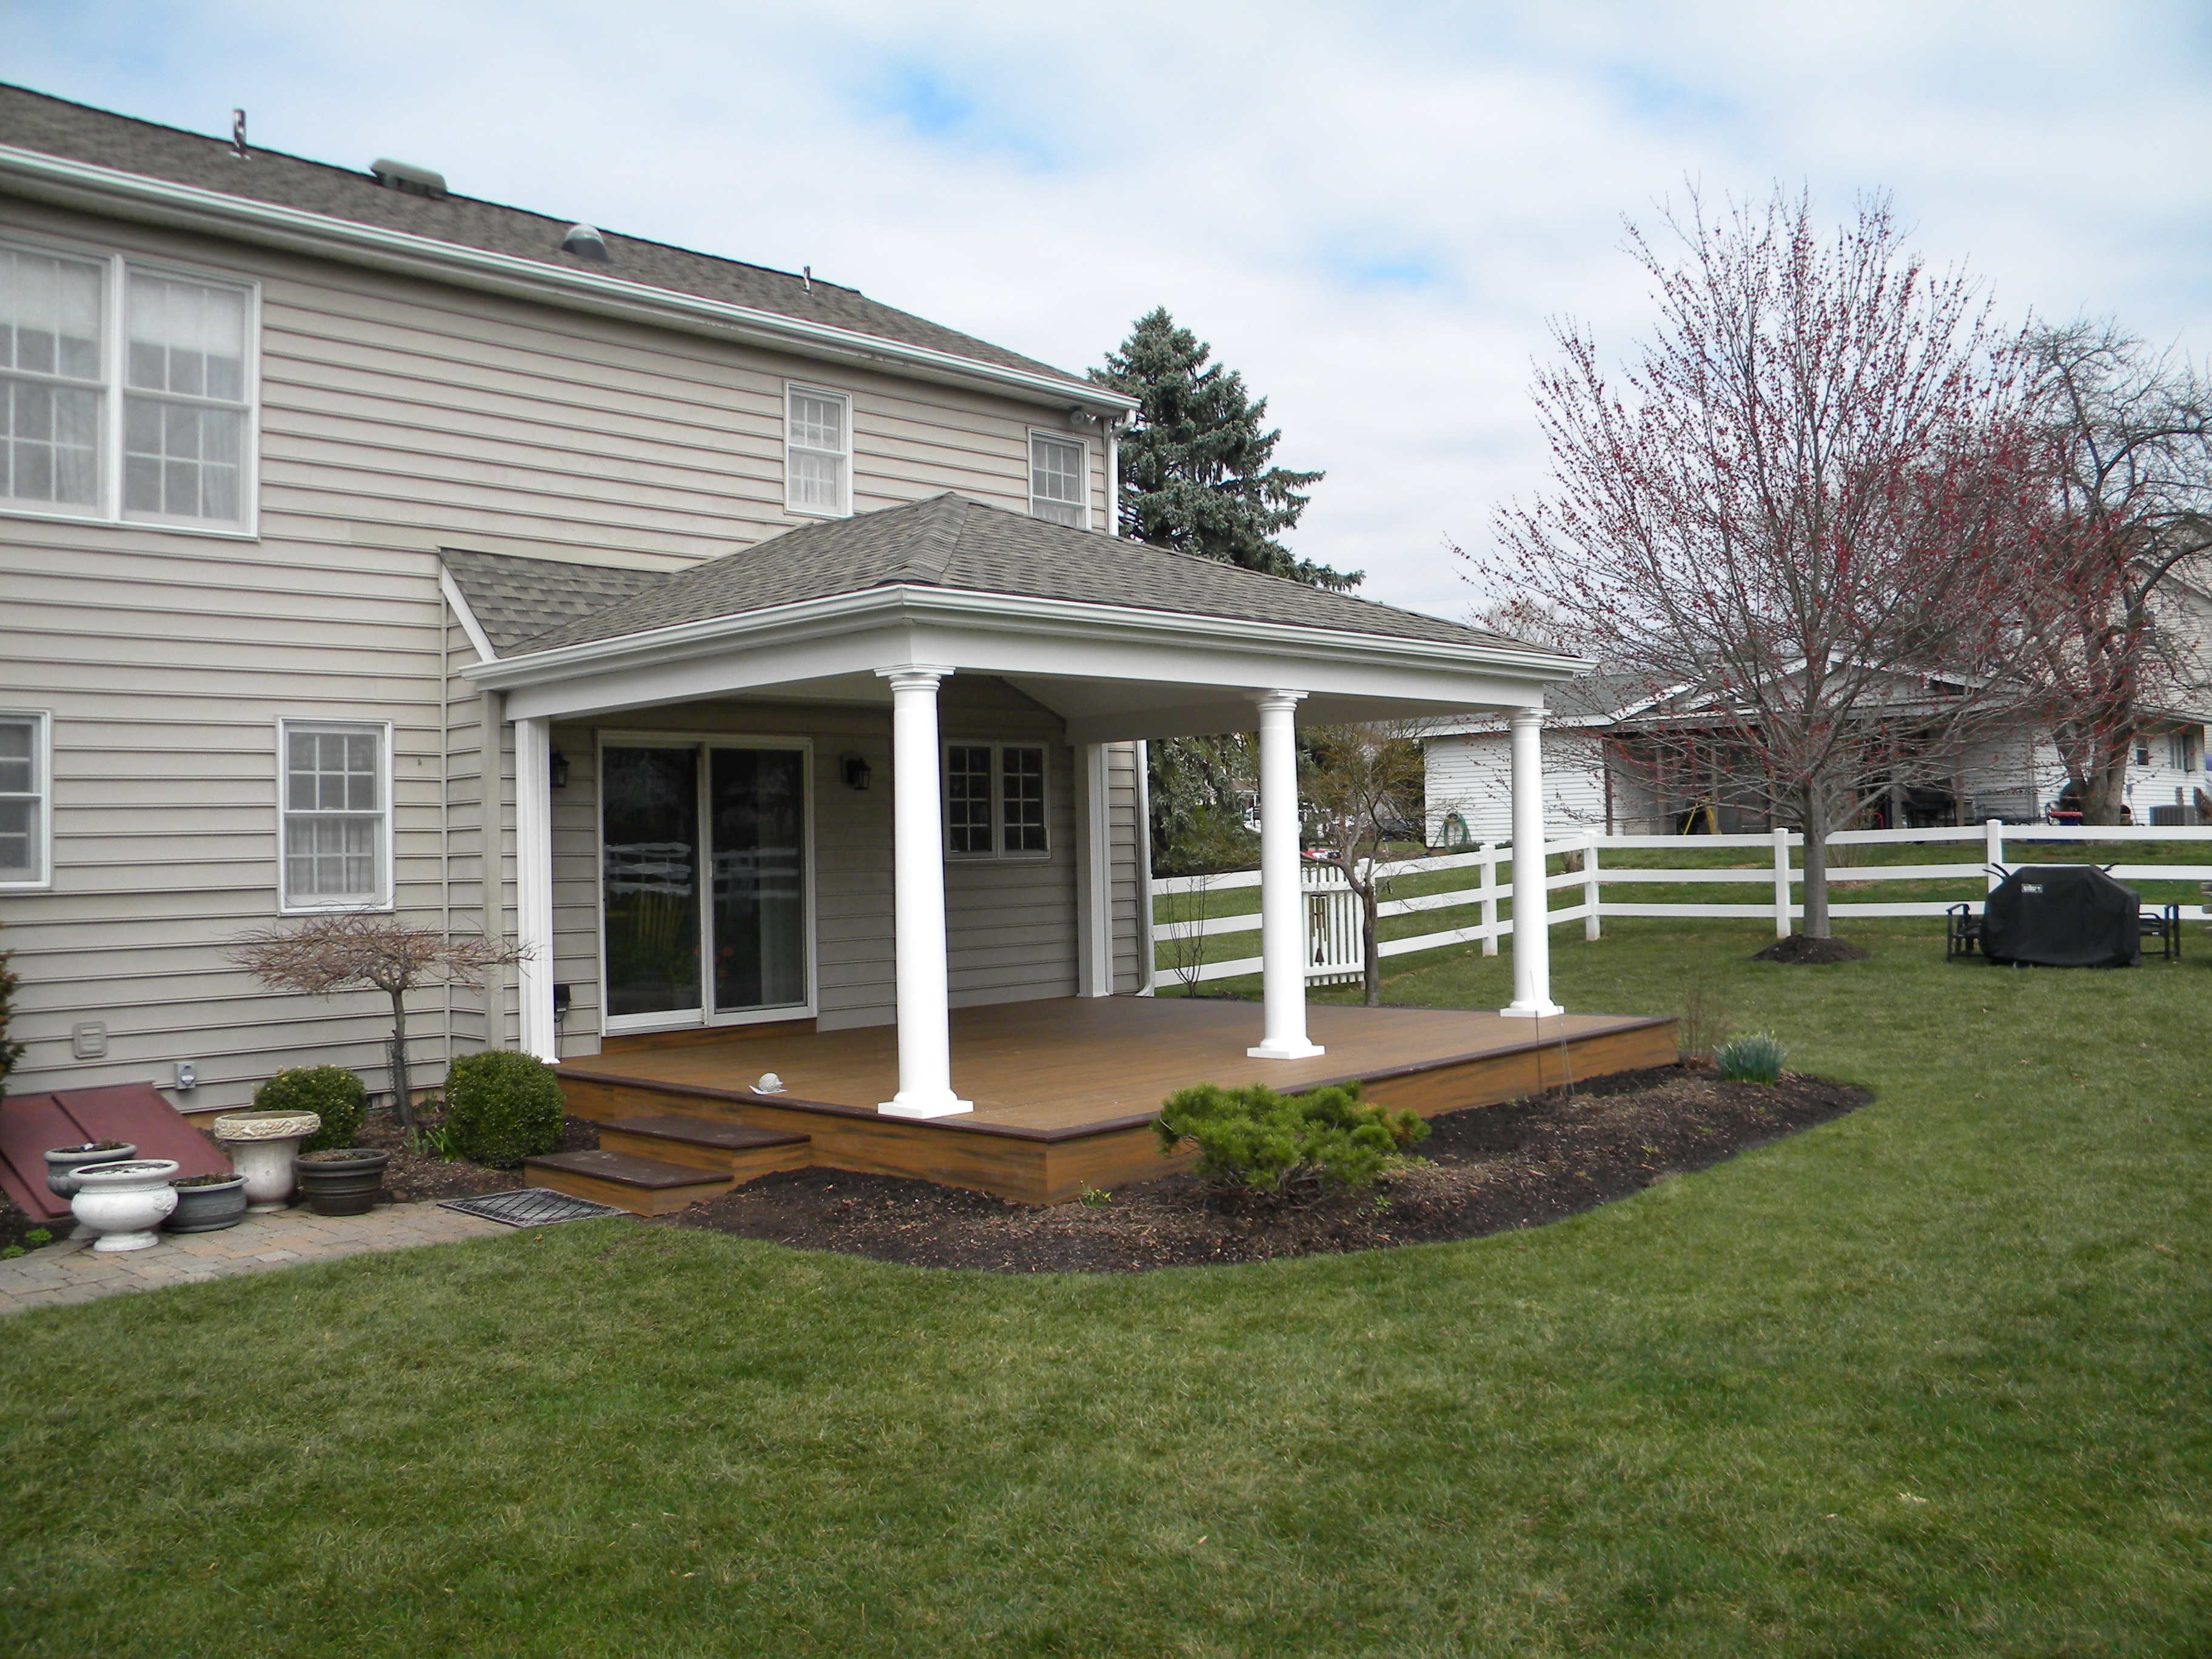 - Trex Transcend Spiced Rum and Vintage Lantern Deck, Vintage Lantern Rail with White Posts and Black Balusters.  Custom Pergola, Stone Skirting, Paver Patio, Fire Water Features and an Outdoor Kitchen- Newtown, PA